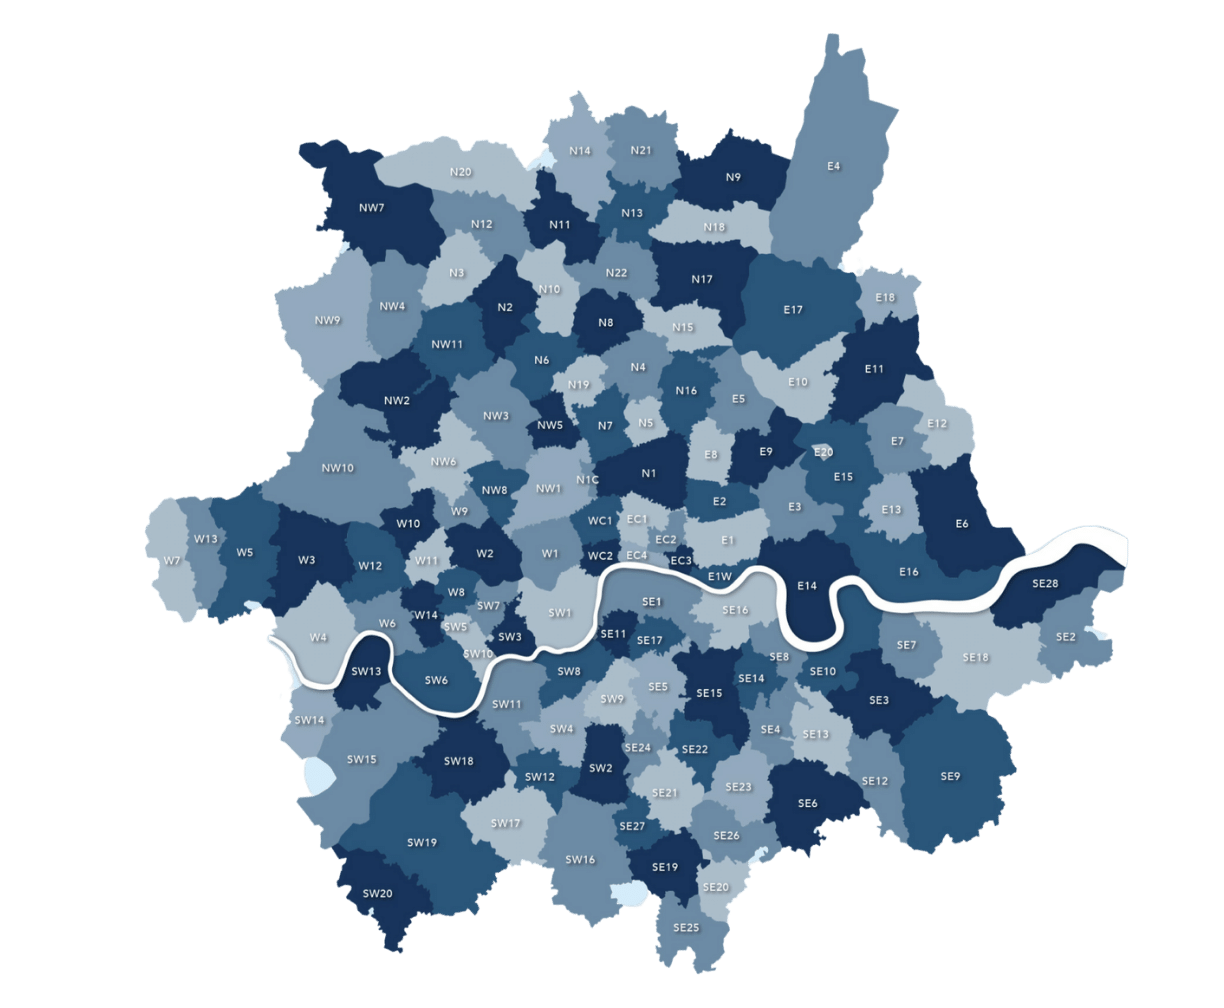 Property Maintenance service coverage area in London